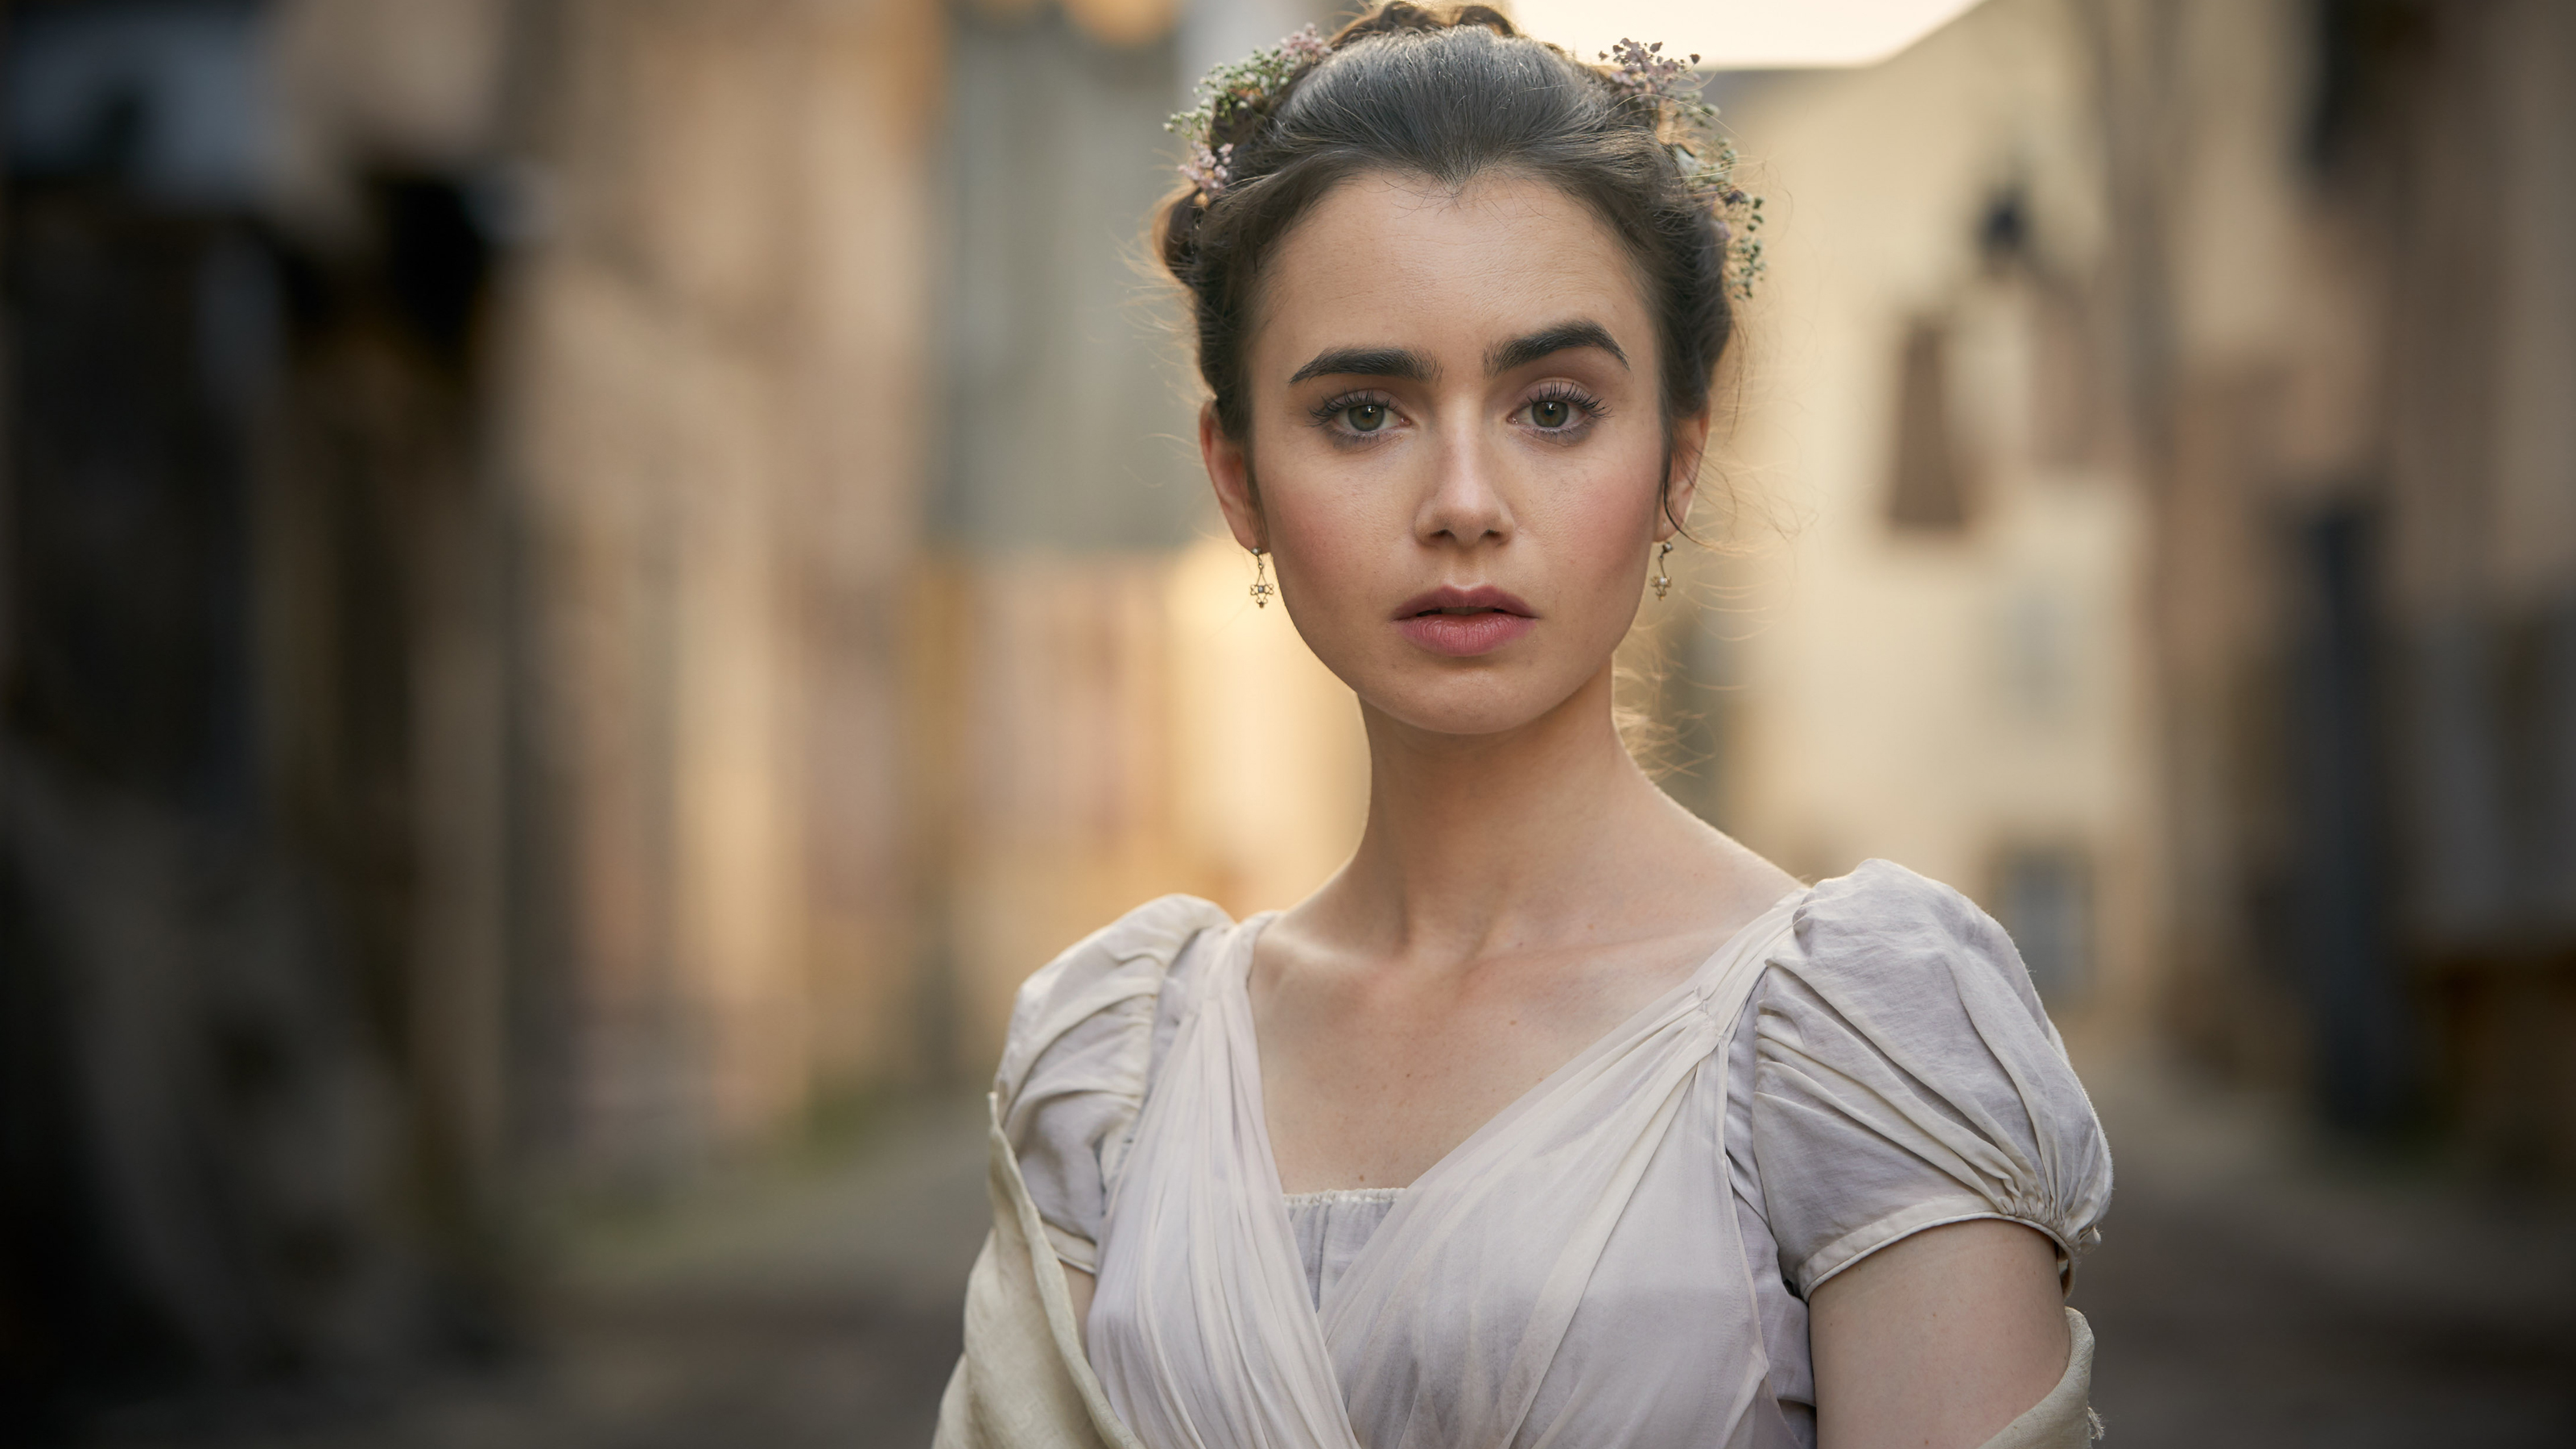 Lily Collins / Credit: BBC Masterpiece